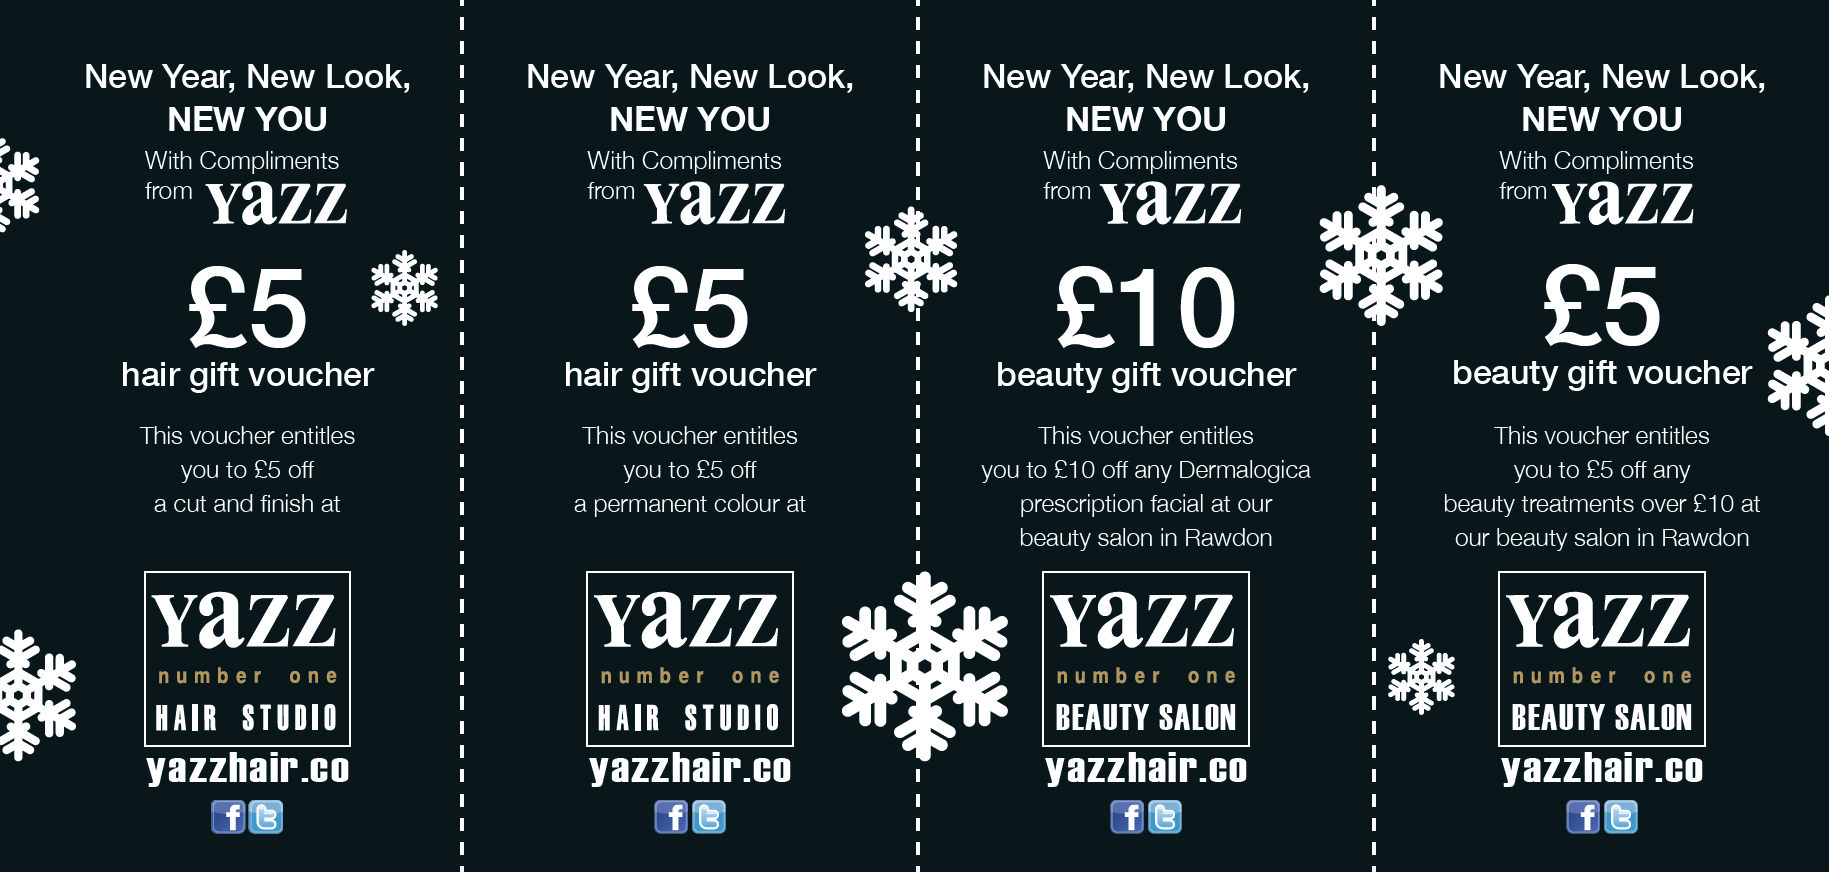 Christmas Vouchers Are Back At Yazz! Money Off Cuts